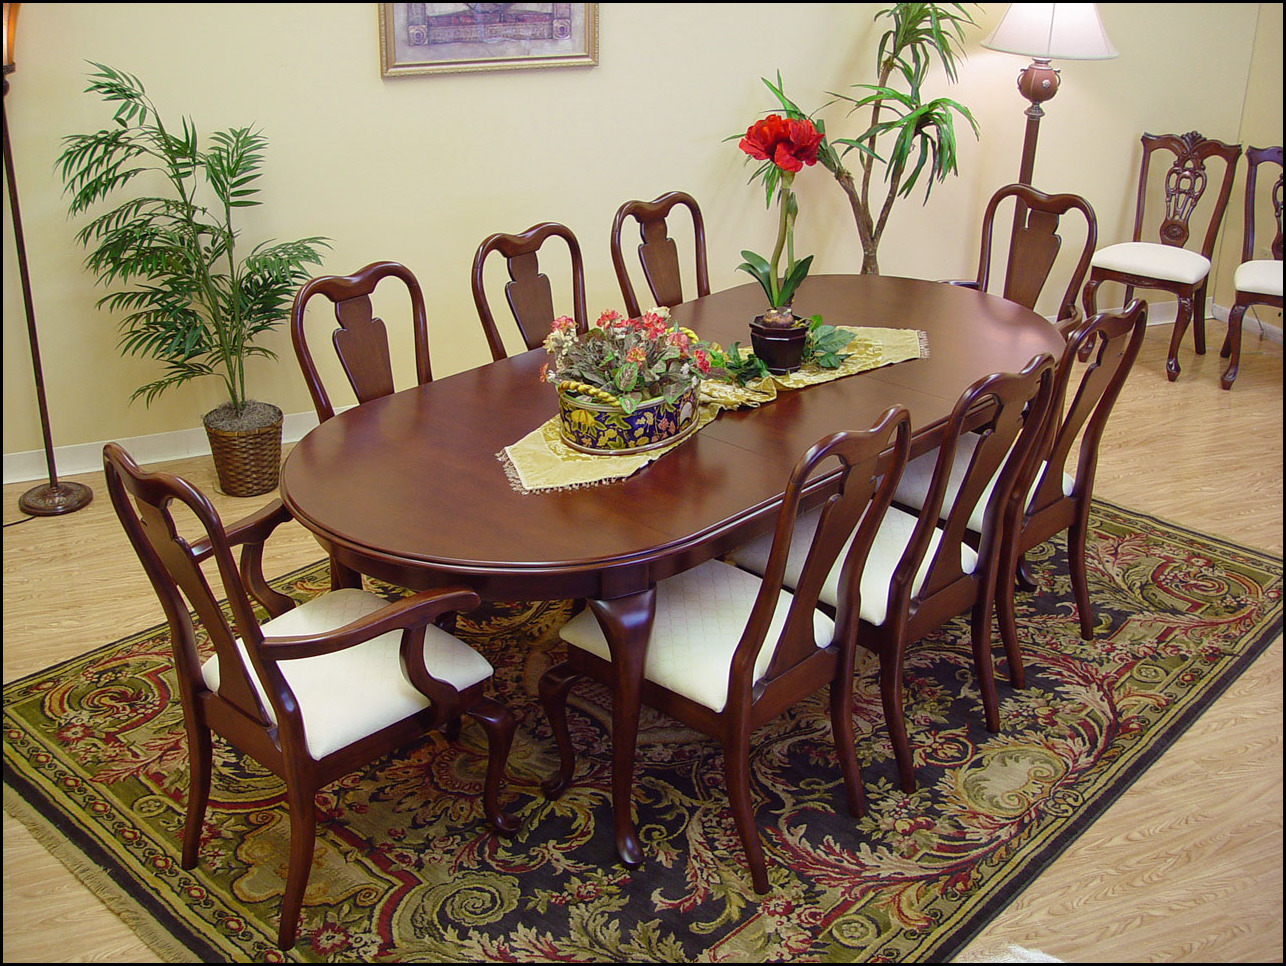 Excellent Queen Anne Furniture For Sale Queen Anne Dining Table And Chairs Queen Anne Bedroom